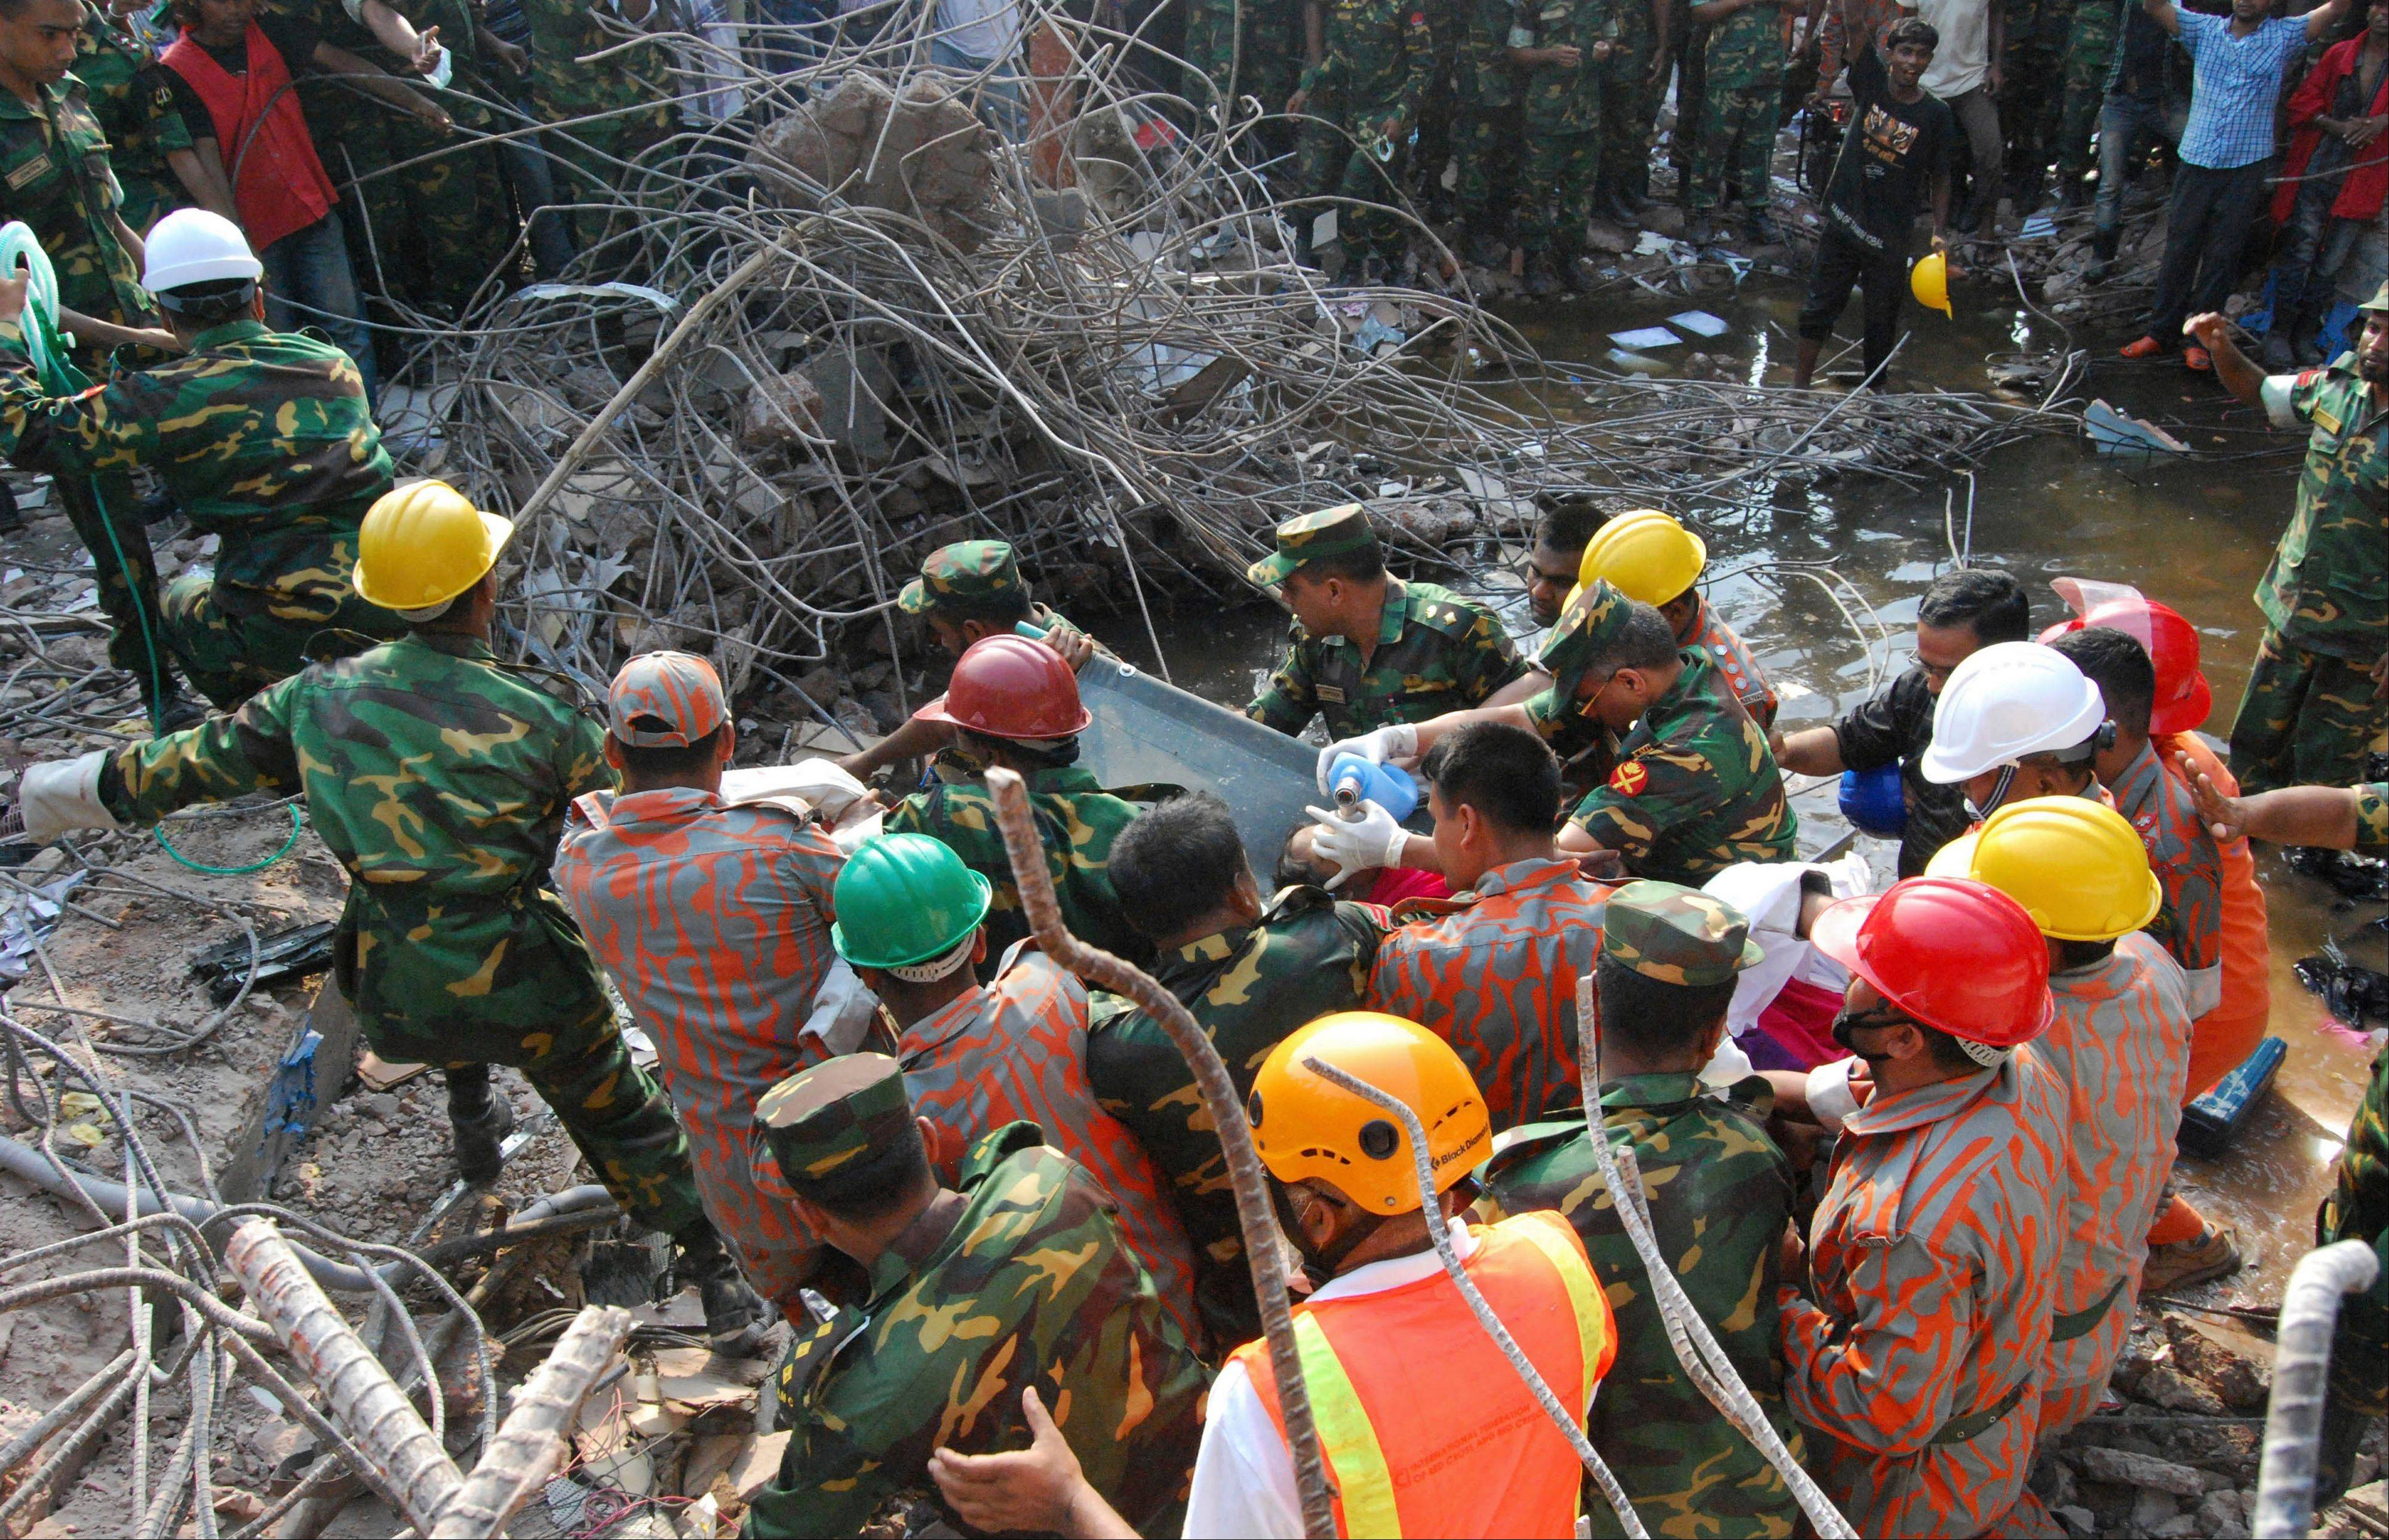 Rescuers carry a survivor pulled out from the rubble of a building that collapsed in Saver, near Dhaka, Bangladesh, Friday, May 10, 2013. Rescue workers in Bangladesh freed the woman buried for 17 days inside the wreckage of a garment factory building that collapsed, killing more than 1,000 people. Soldiers at the site said her name was Reshma and described her as being in remarkably good shape despite her ordeal.